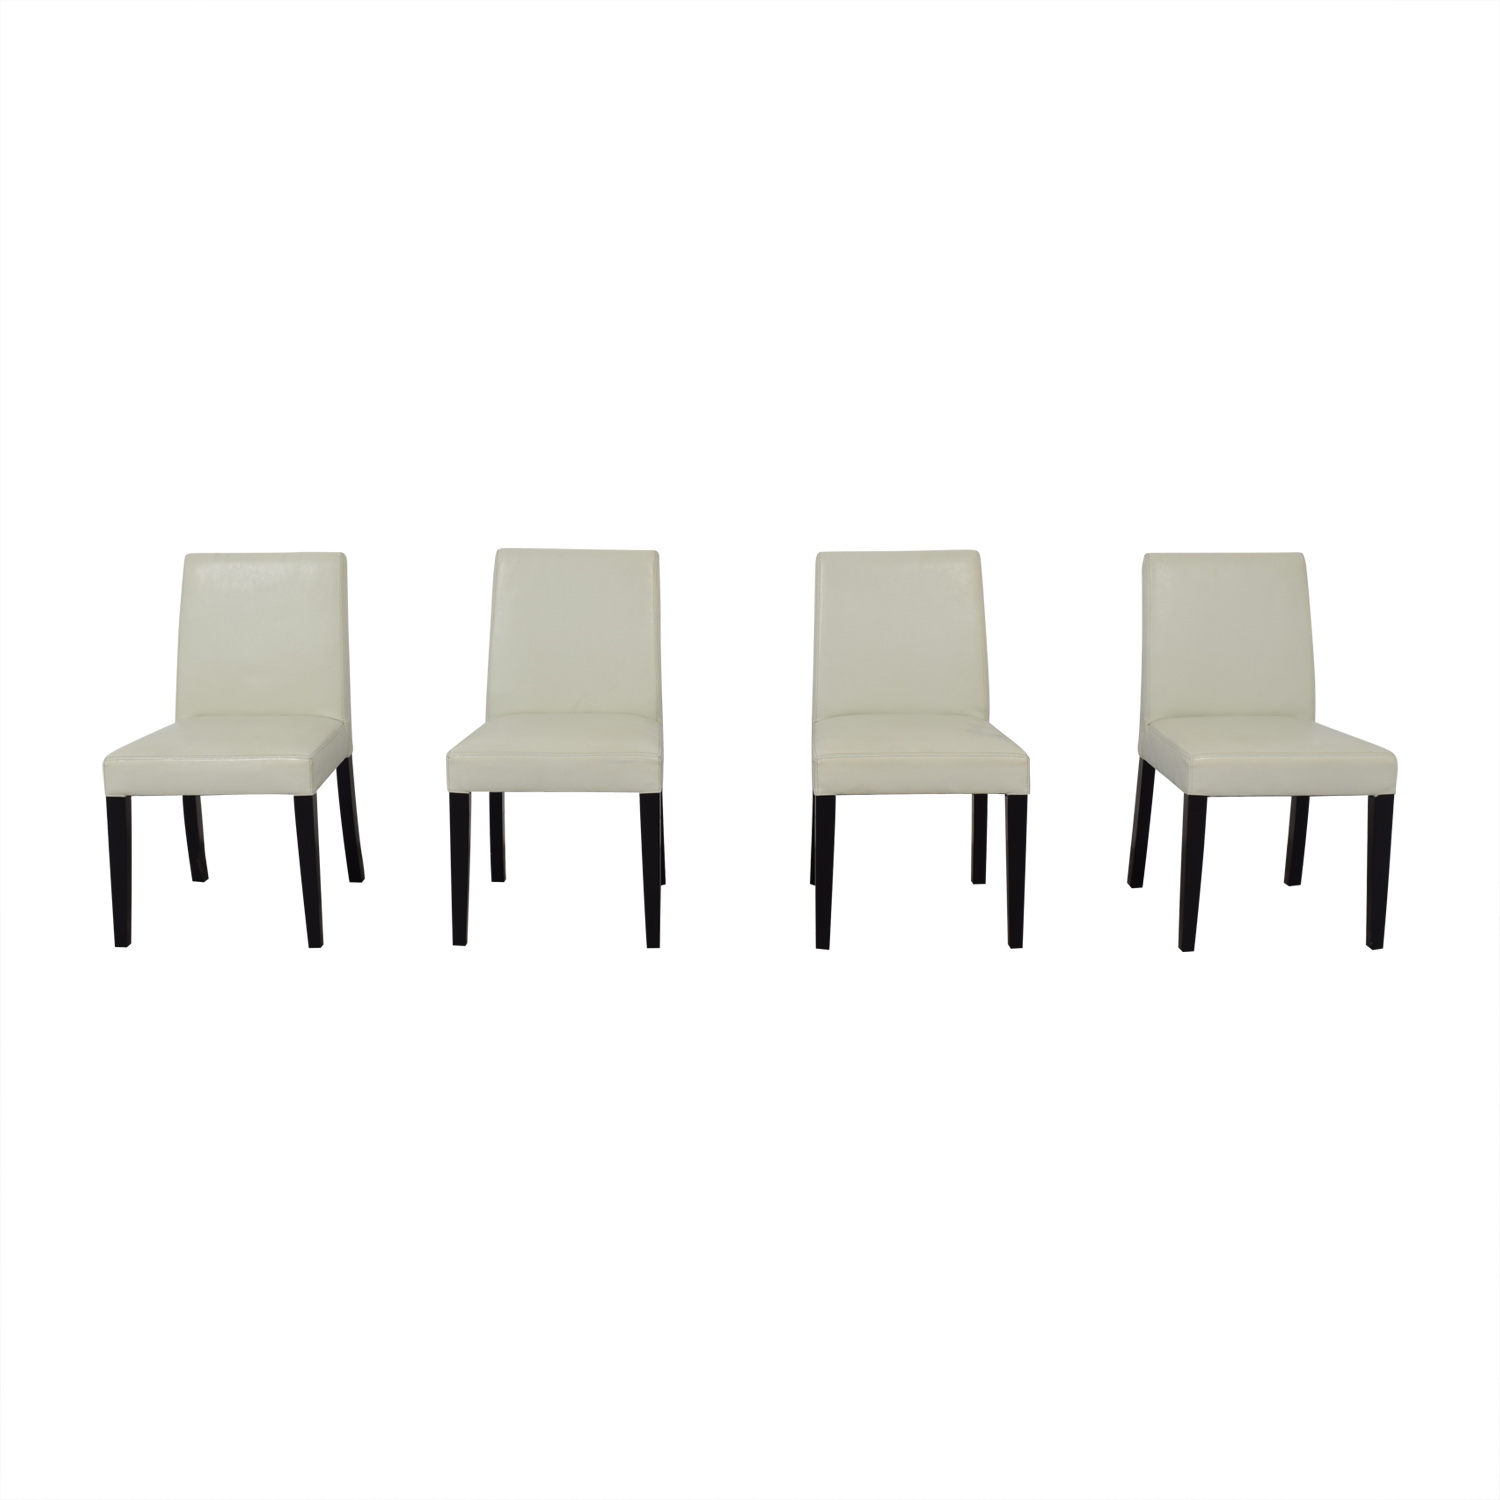 shop Crate & Barrel White Leather Dining Chairs Crate & Barrel Dining Chairs